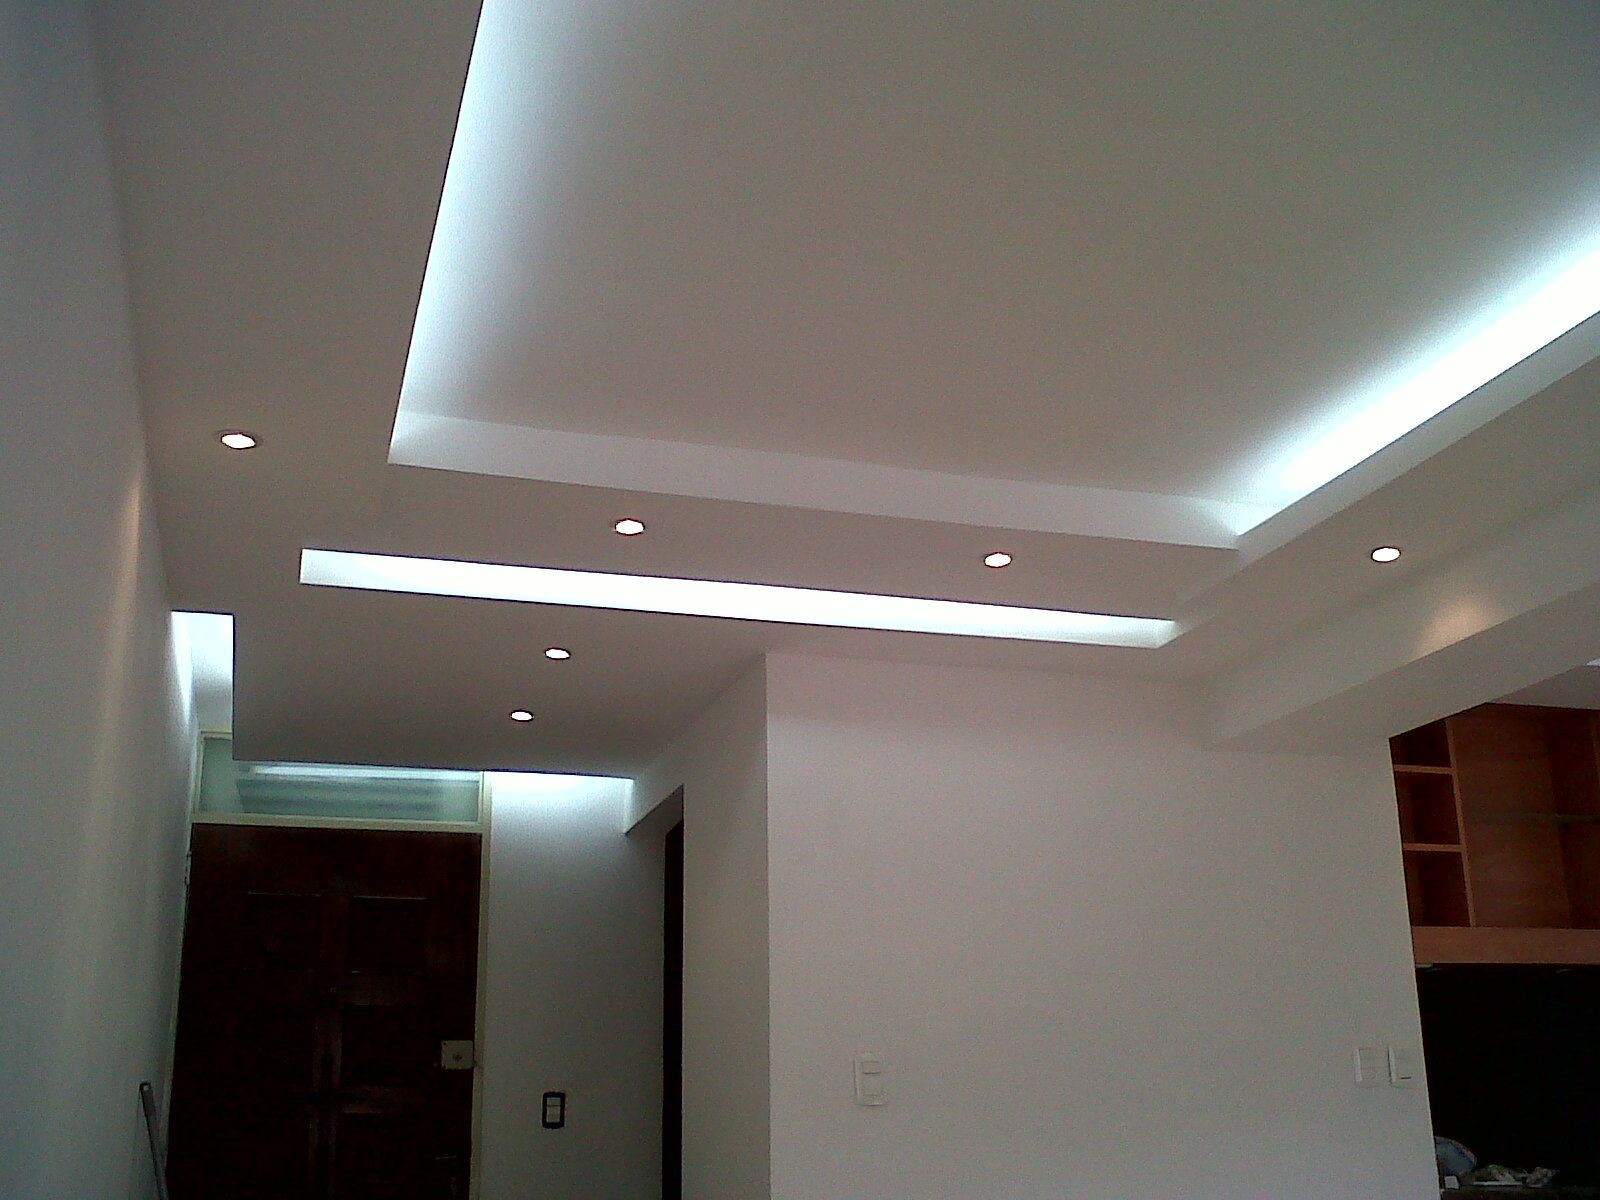 Cenefas Bajas Clinica Dental Ideas Pinterest Cielo ~ Techos Decorativos Para Interiores